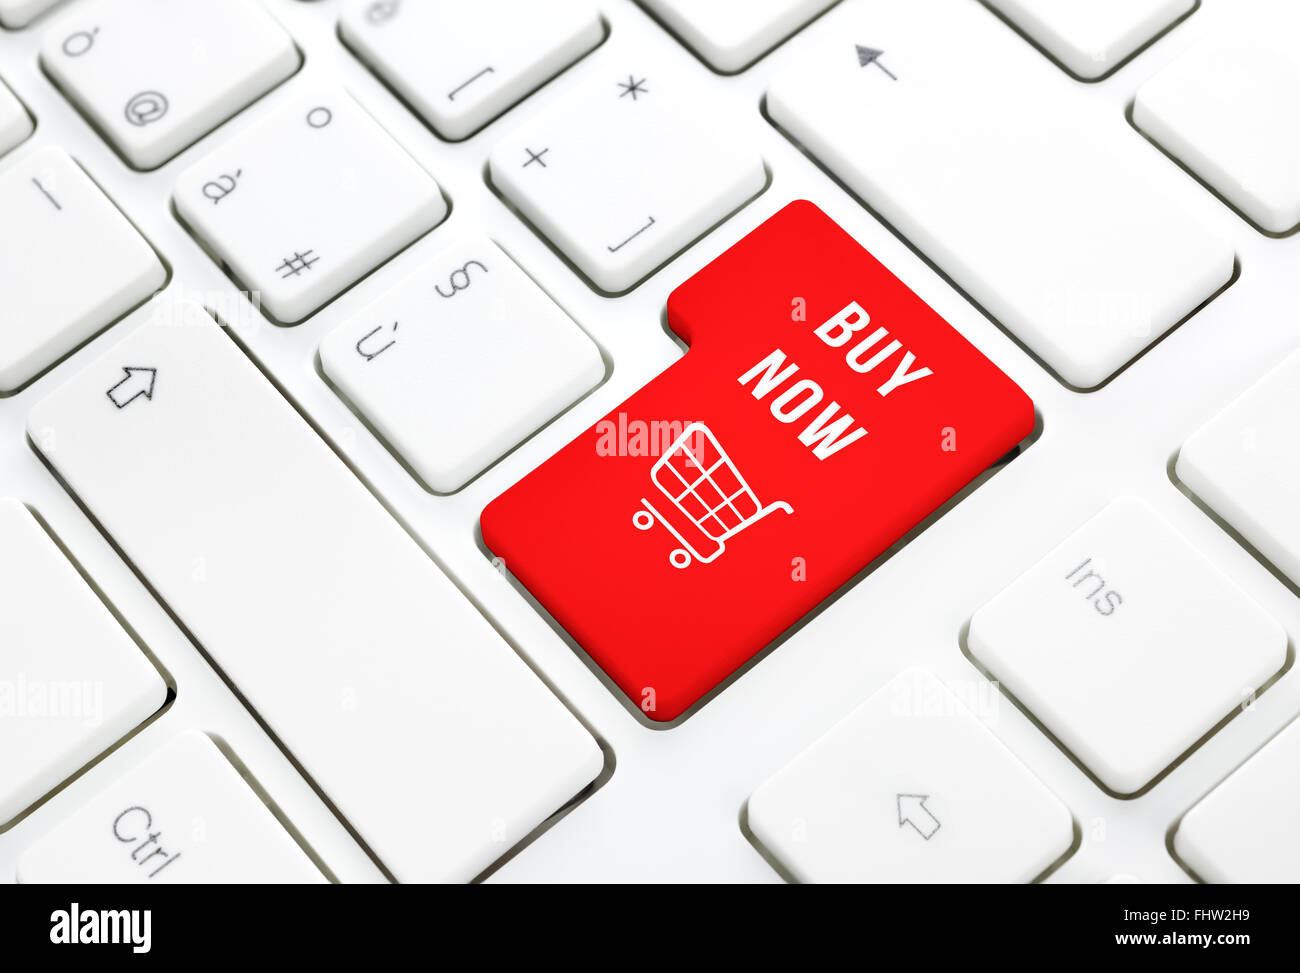 Shop online buy now business concept, Red shopping cart button or key on white keyboard photography. - Stock Image